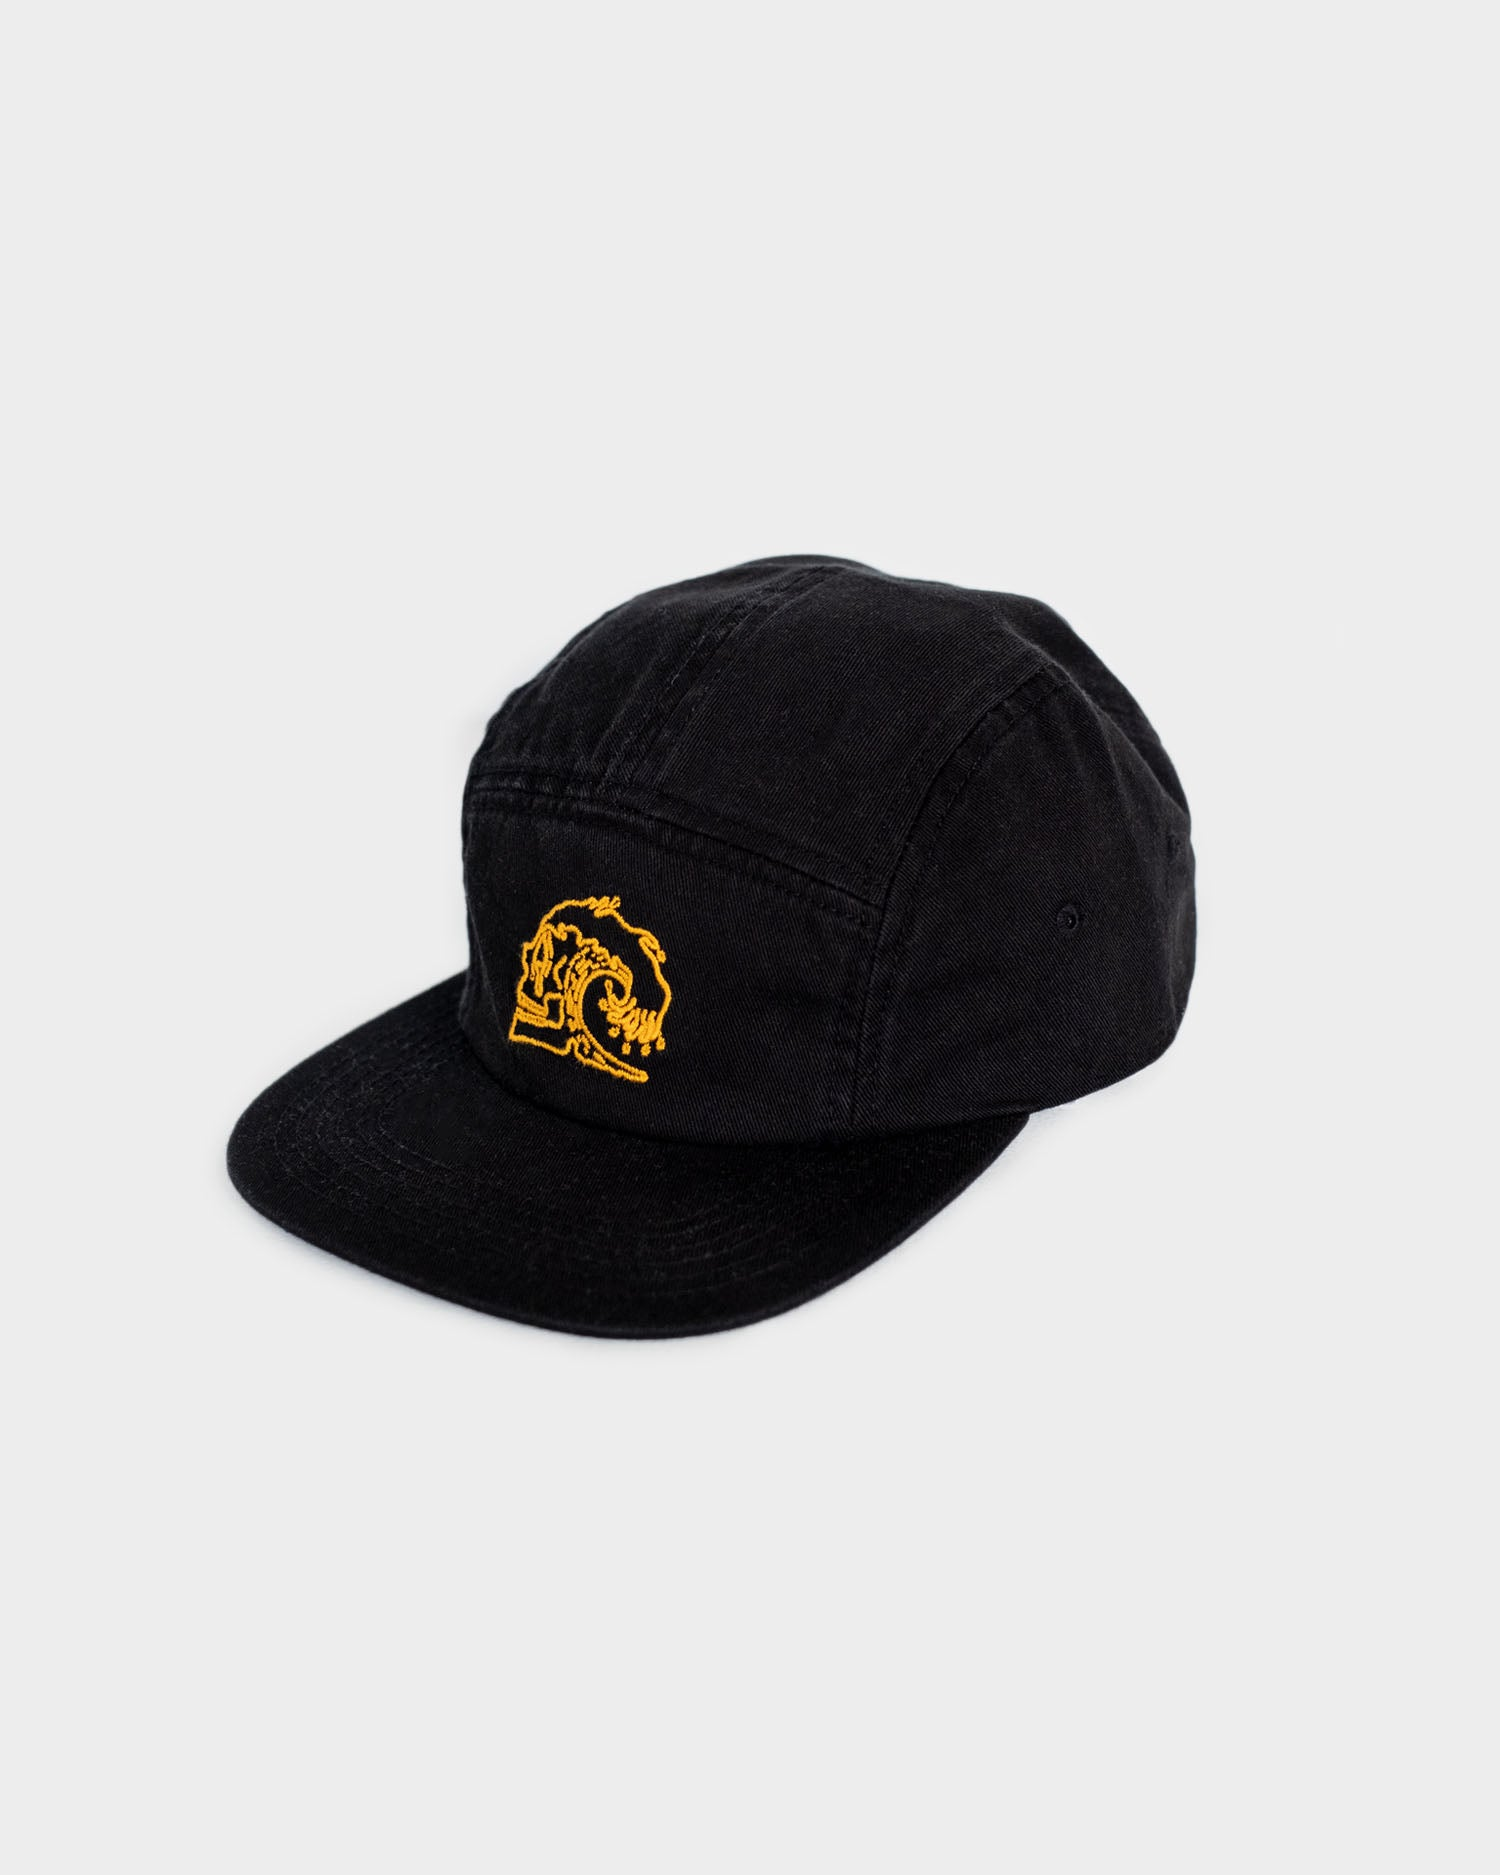 Slaves to The Waves Black 5 Panel Cap